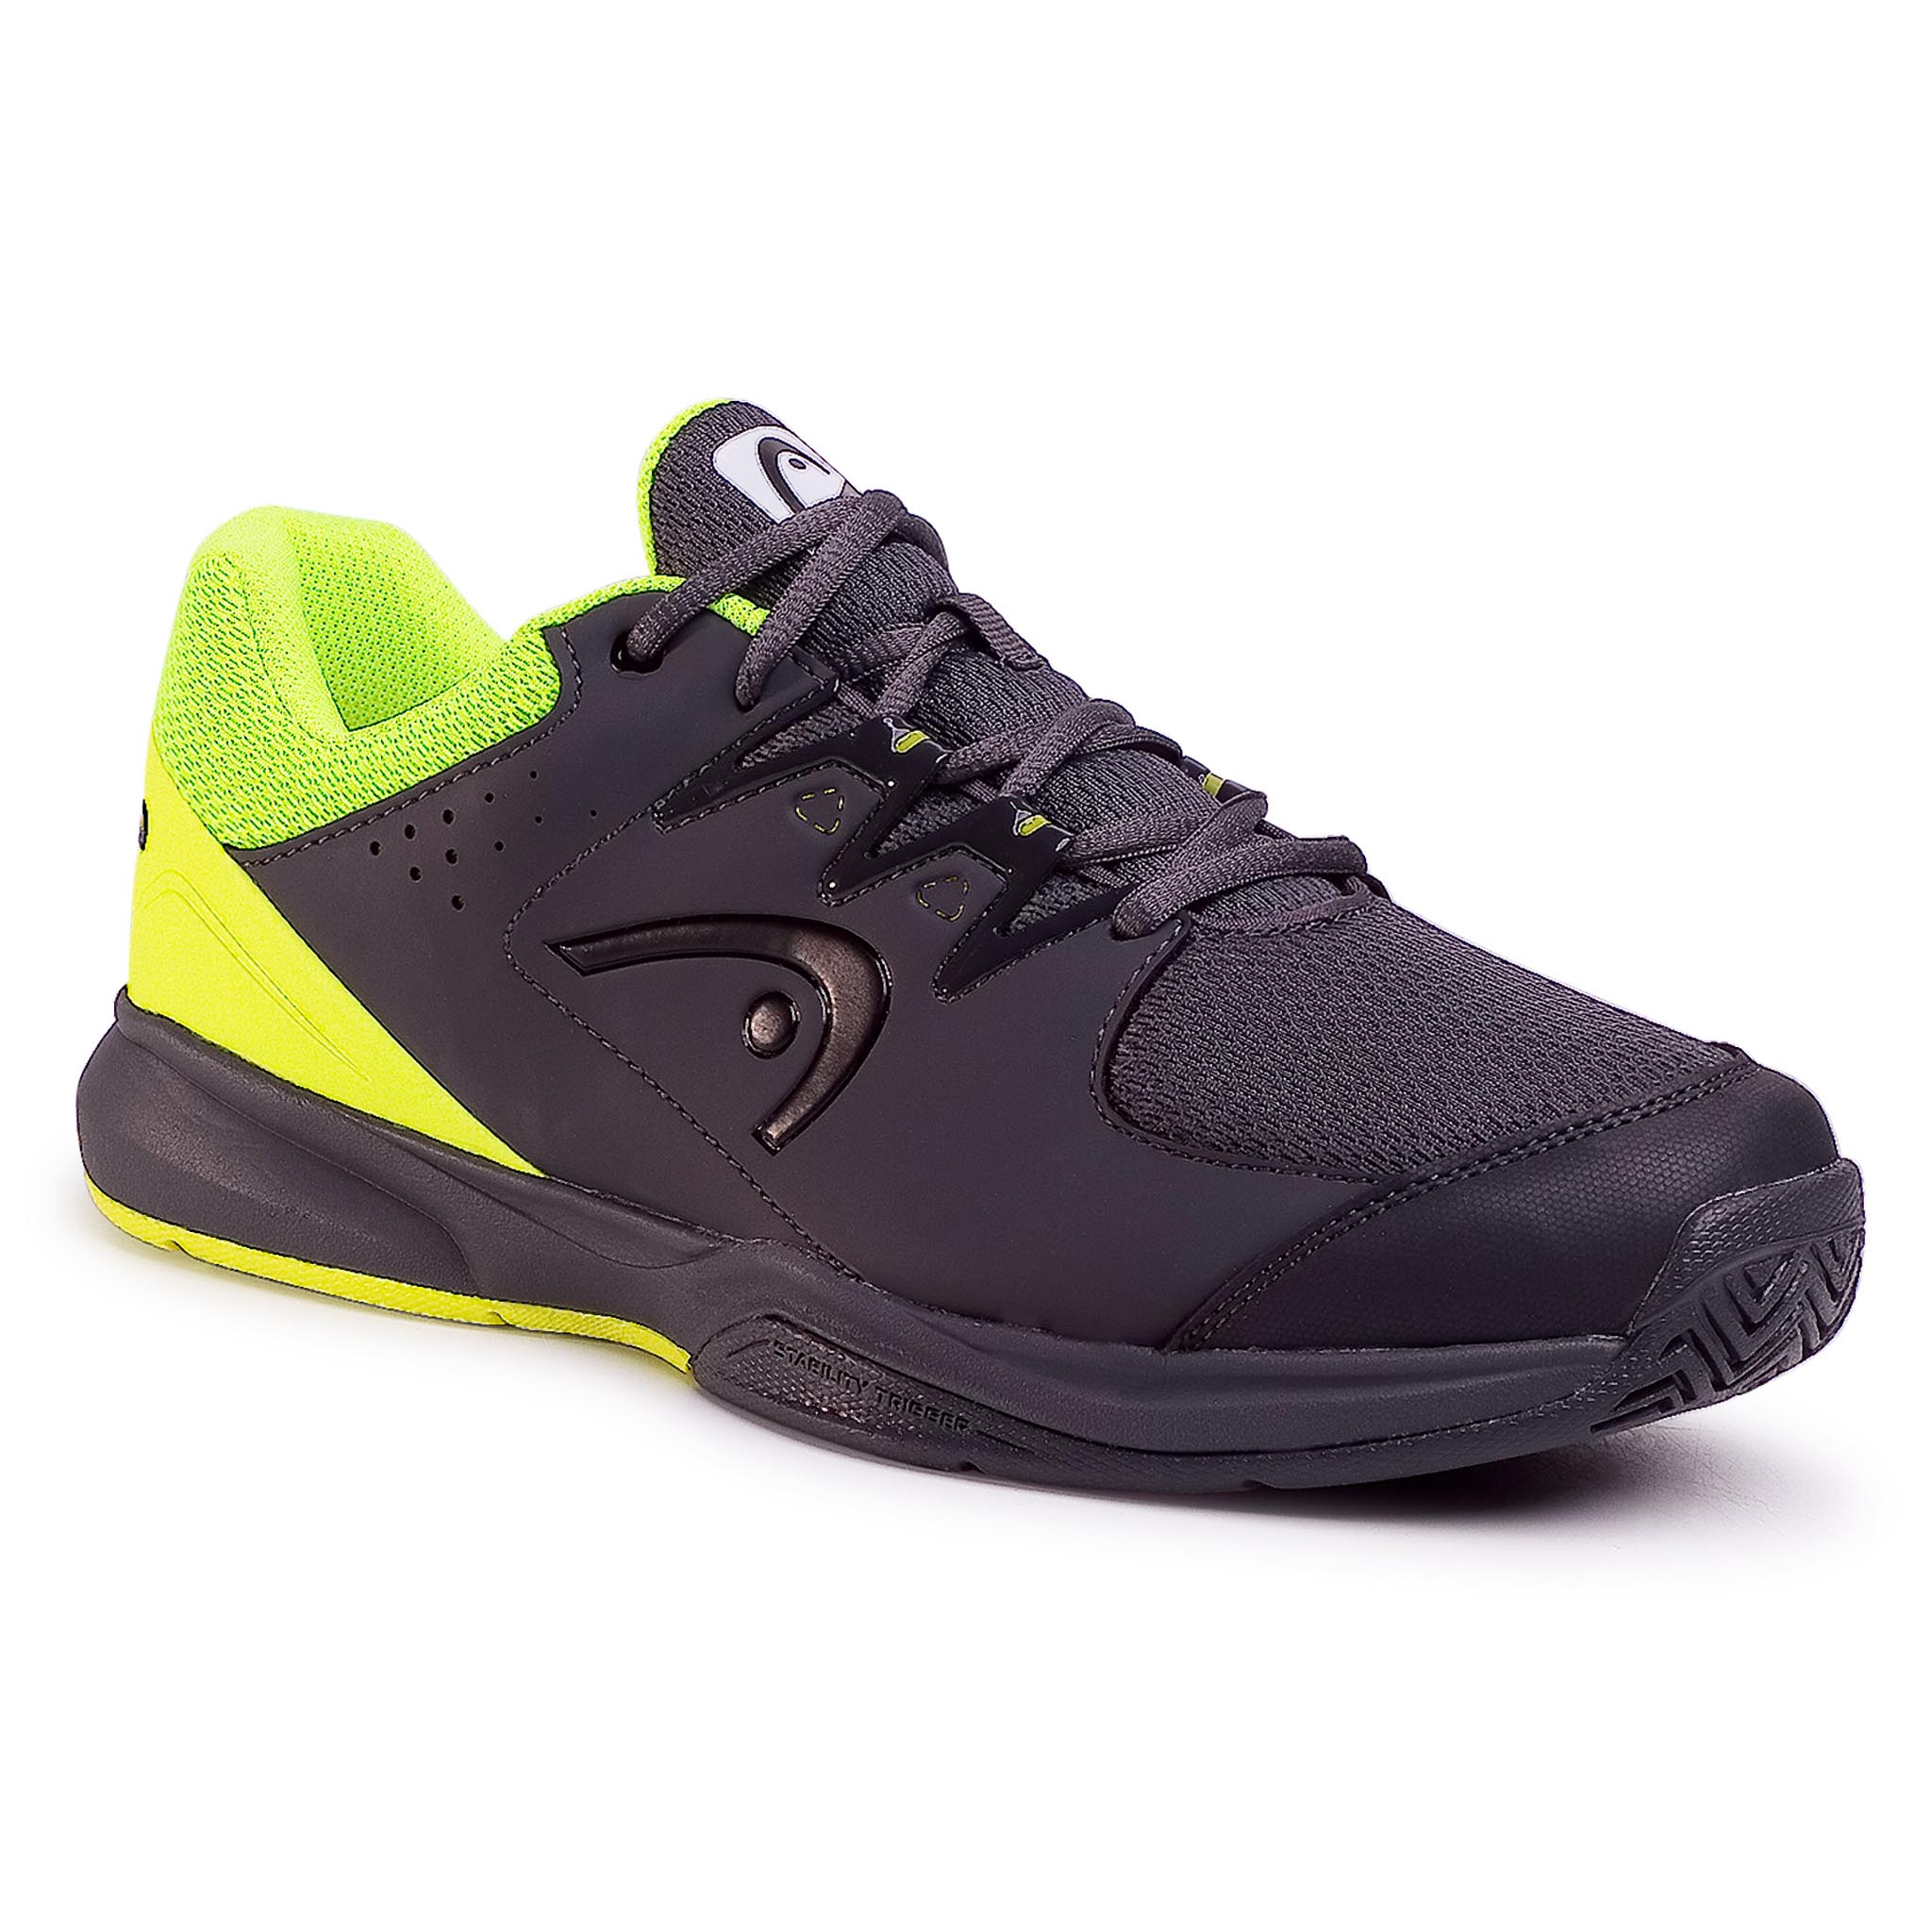 Pantofi Head - Brazer 2.0 273410 Anthracite/Neon Yellow 090 imagine epantofi.ro 2021